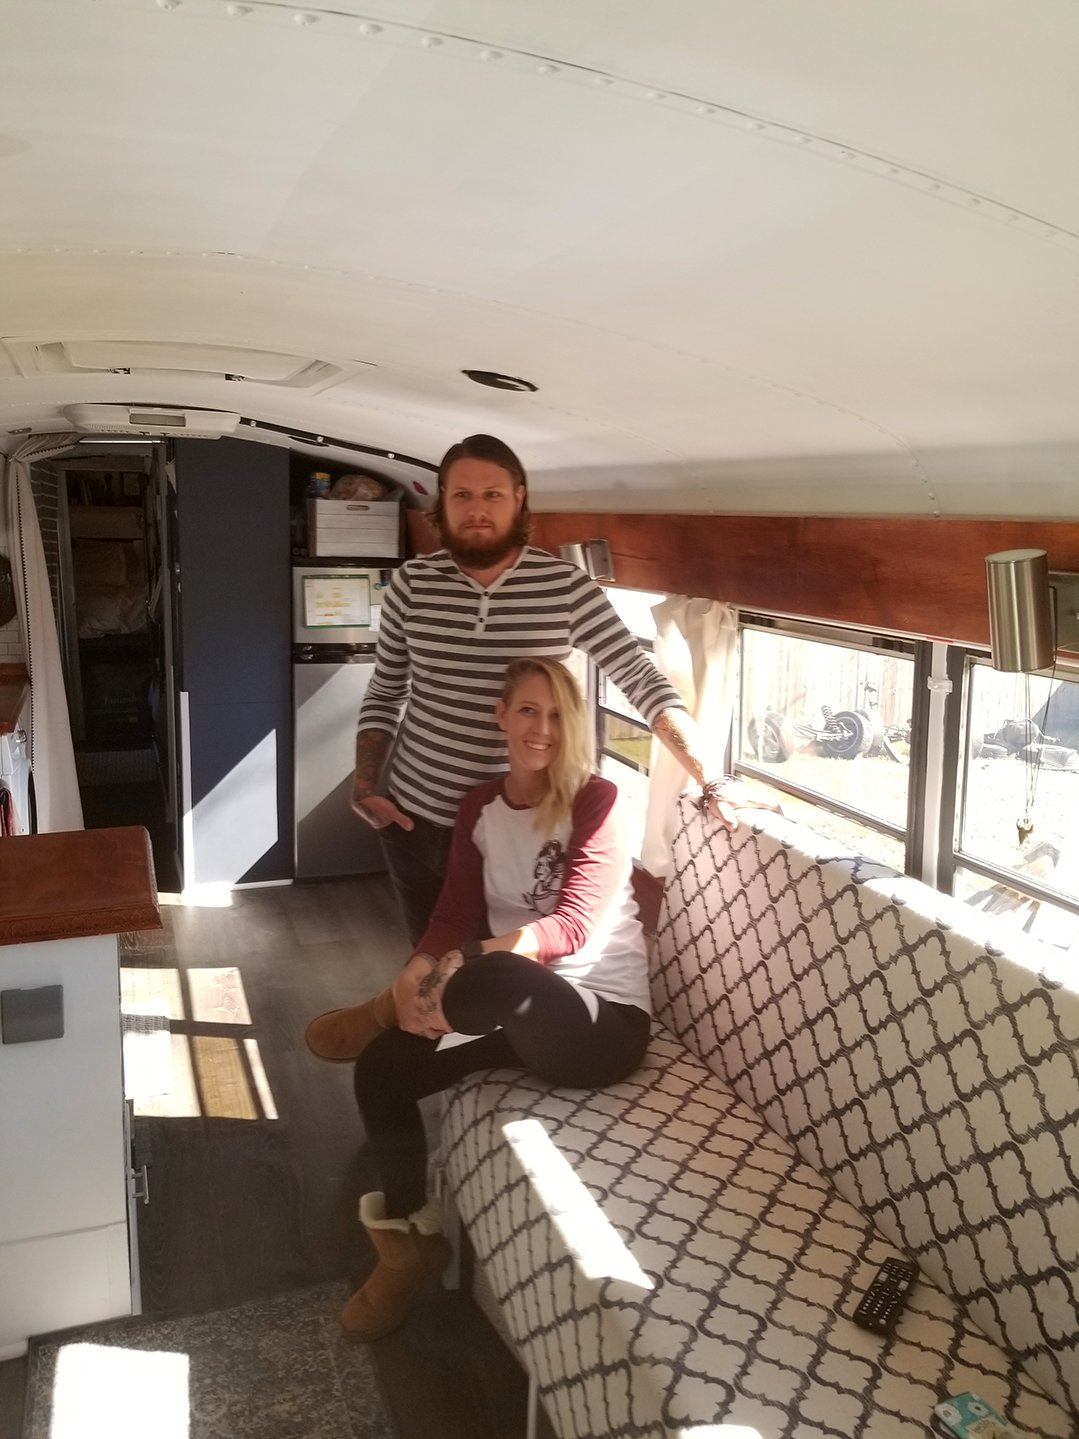 Sean Hetrick and his wife, Ally, transformed an old school bus into a mobile home that will also serve as his means of transportation during a national tour that starts in January.